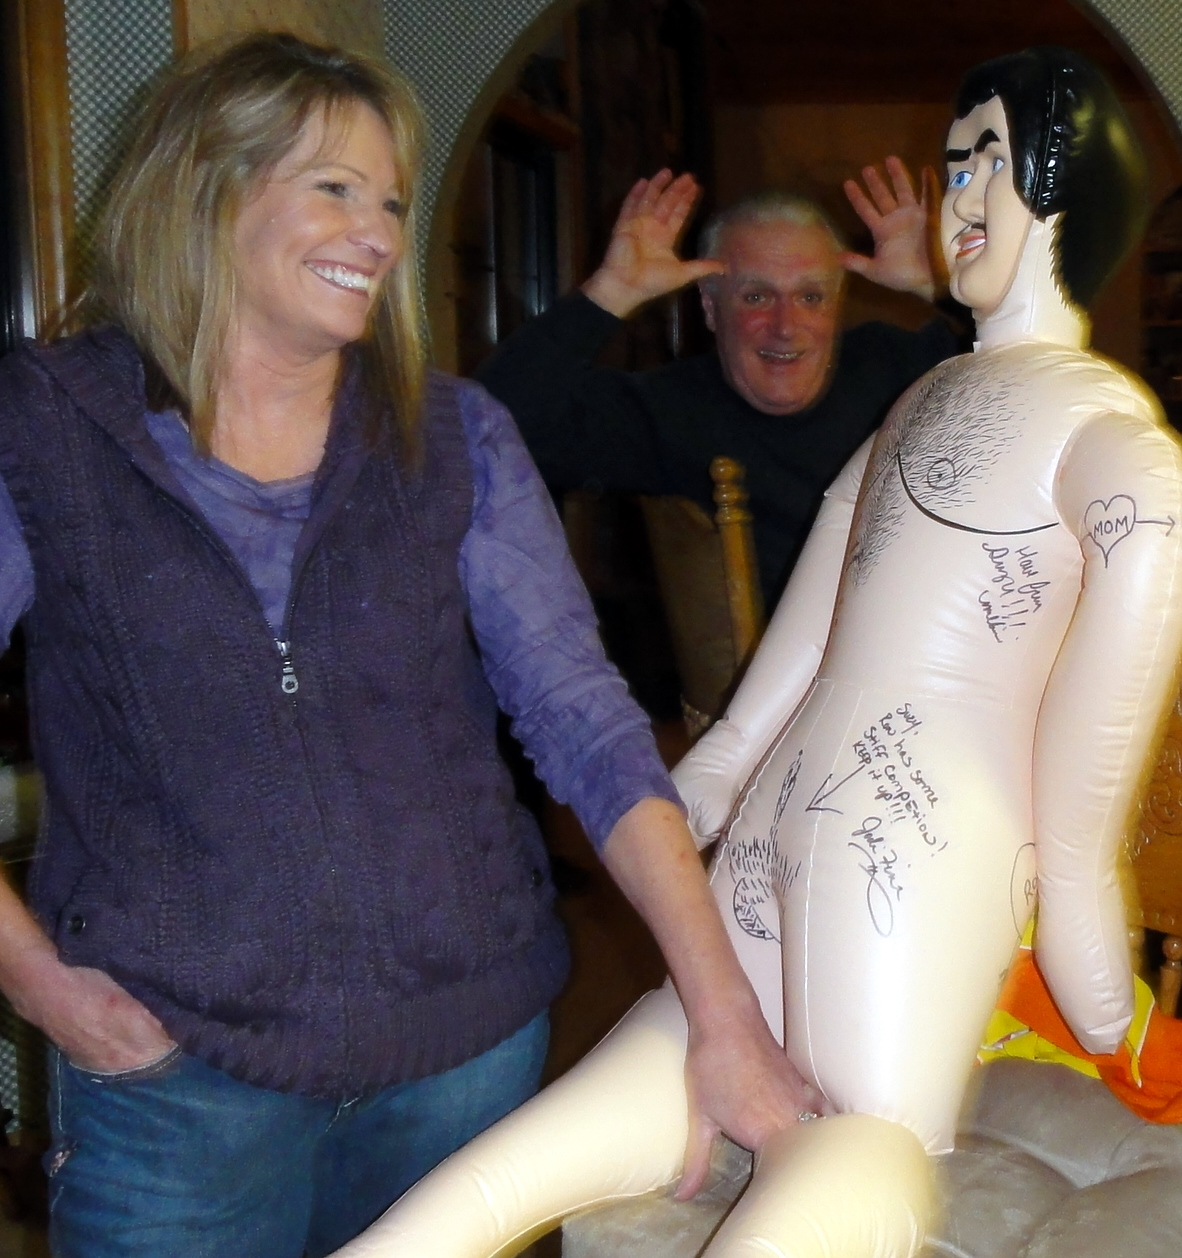 what do you do with a blow up doll